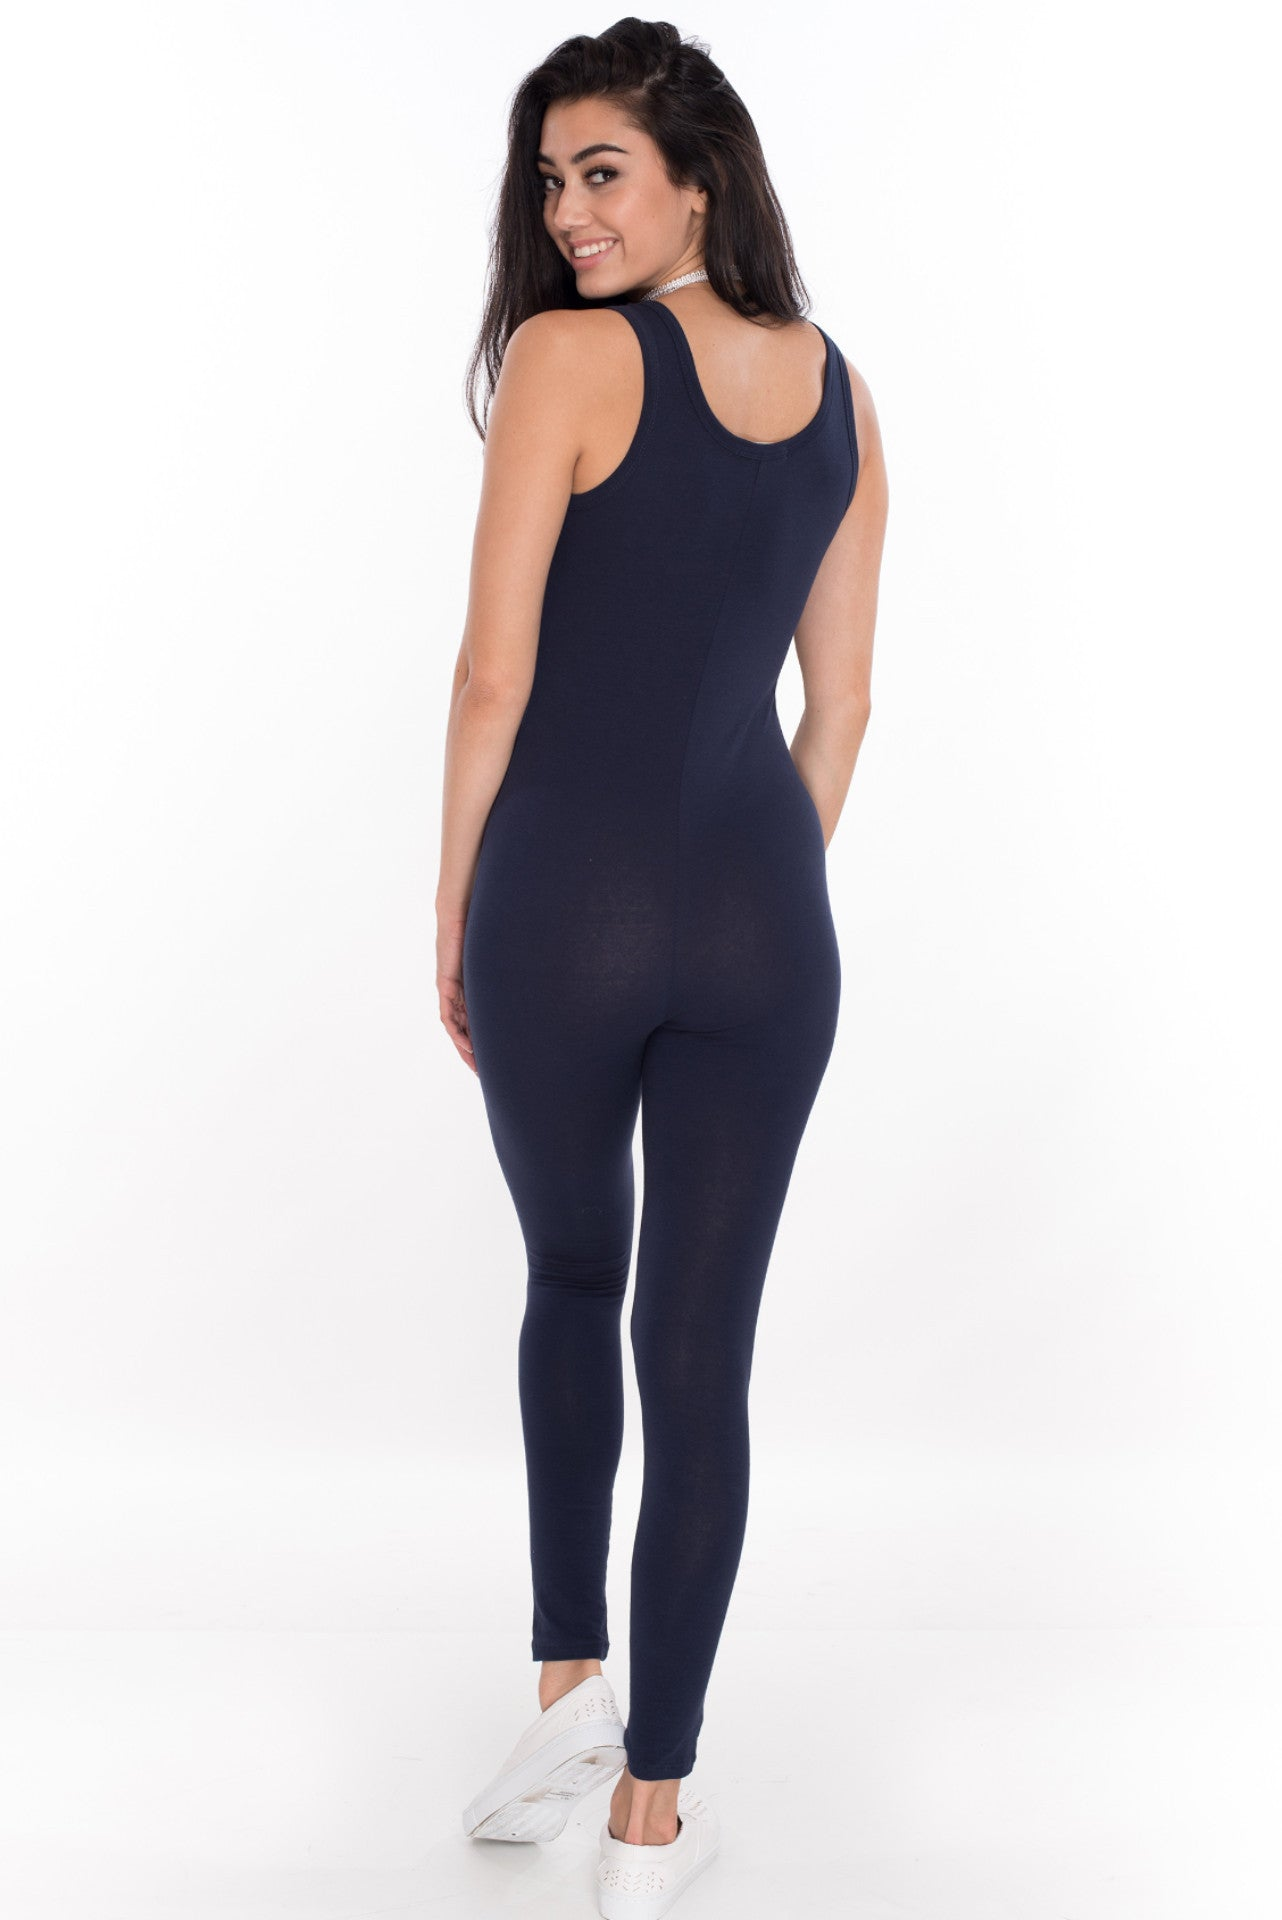 Kitty Catsuit - Navy